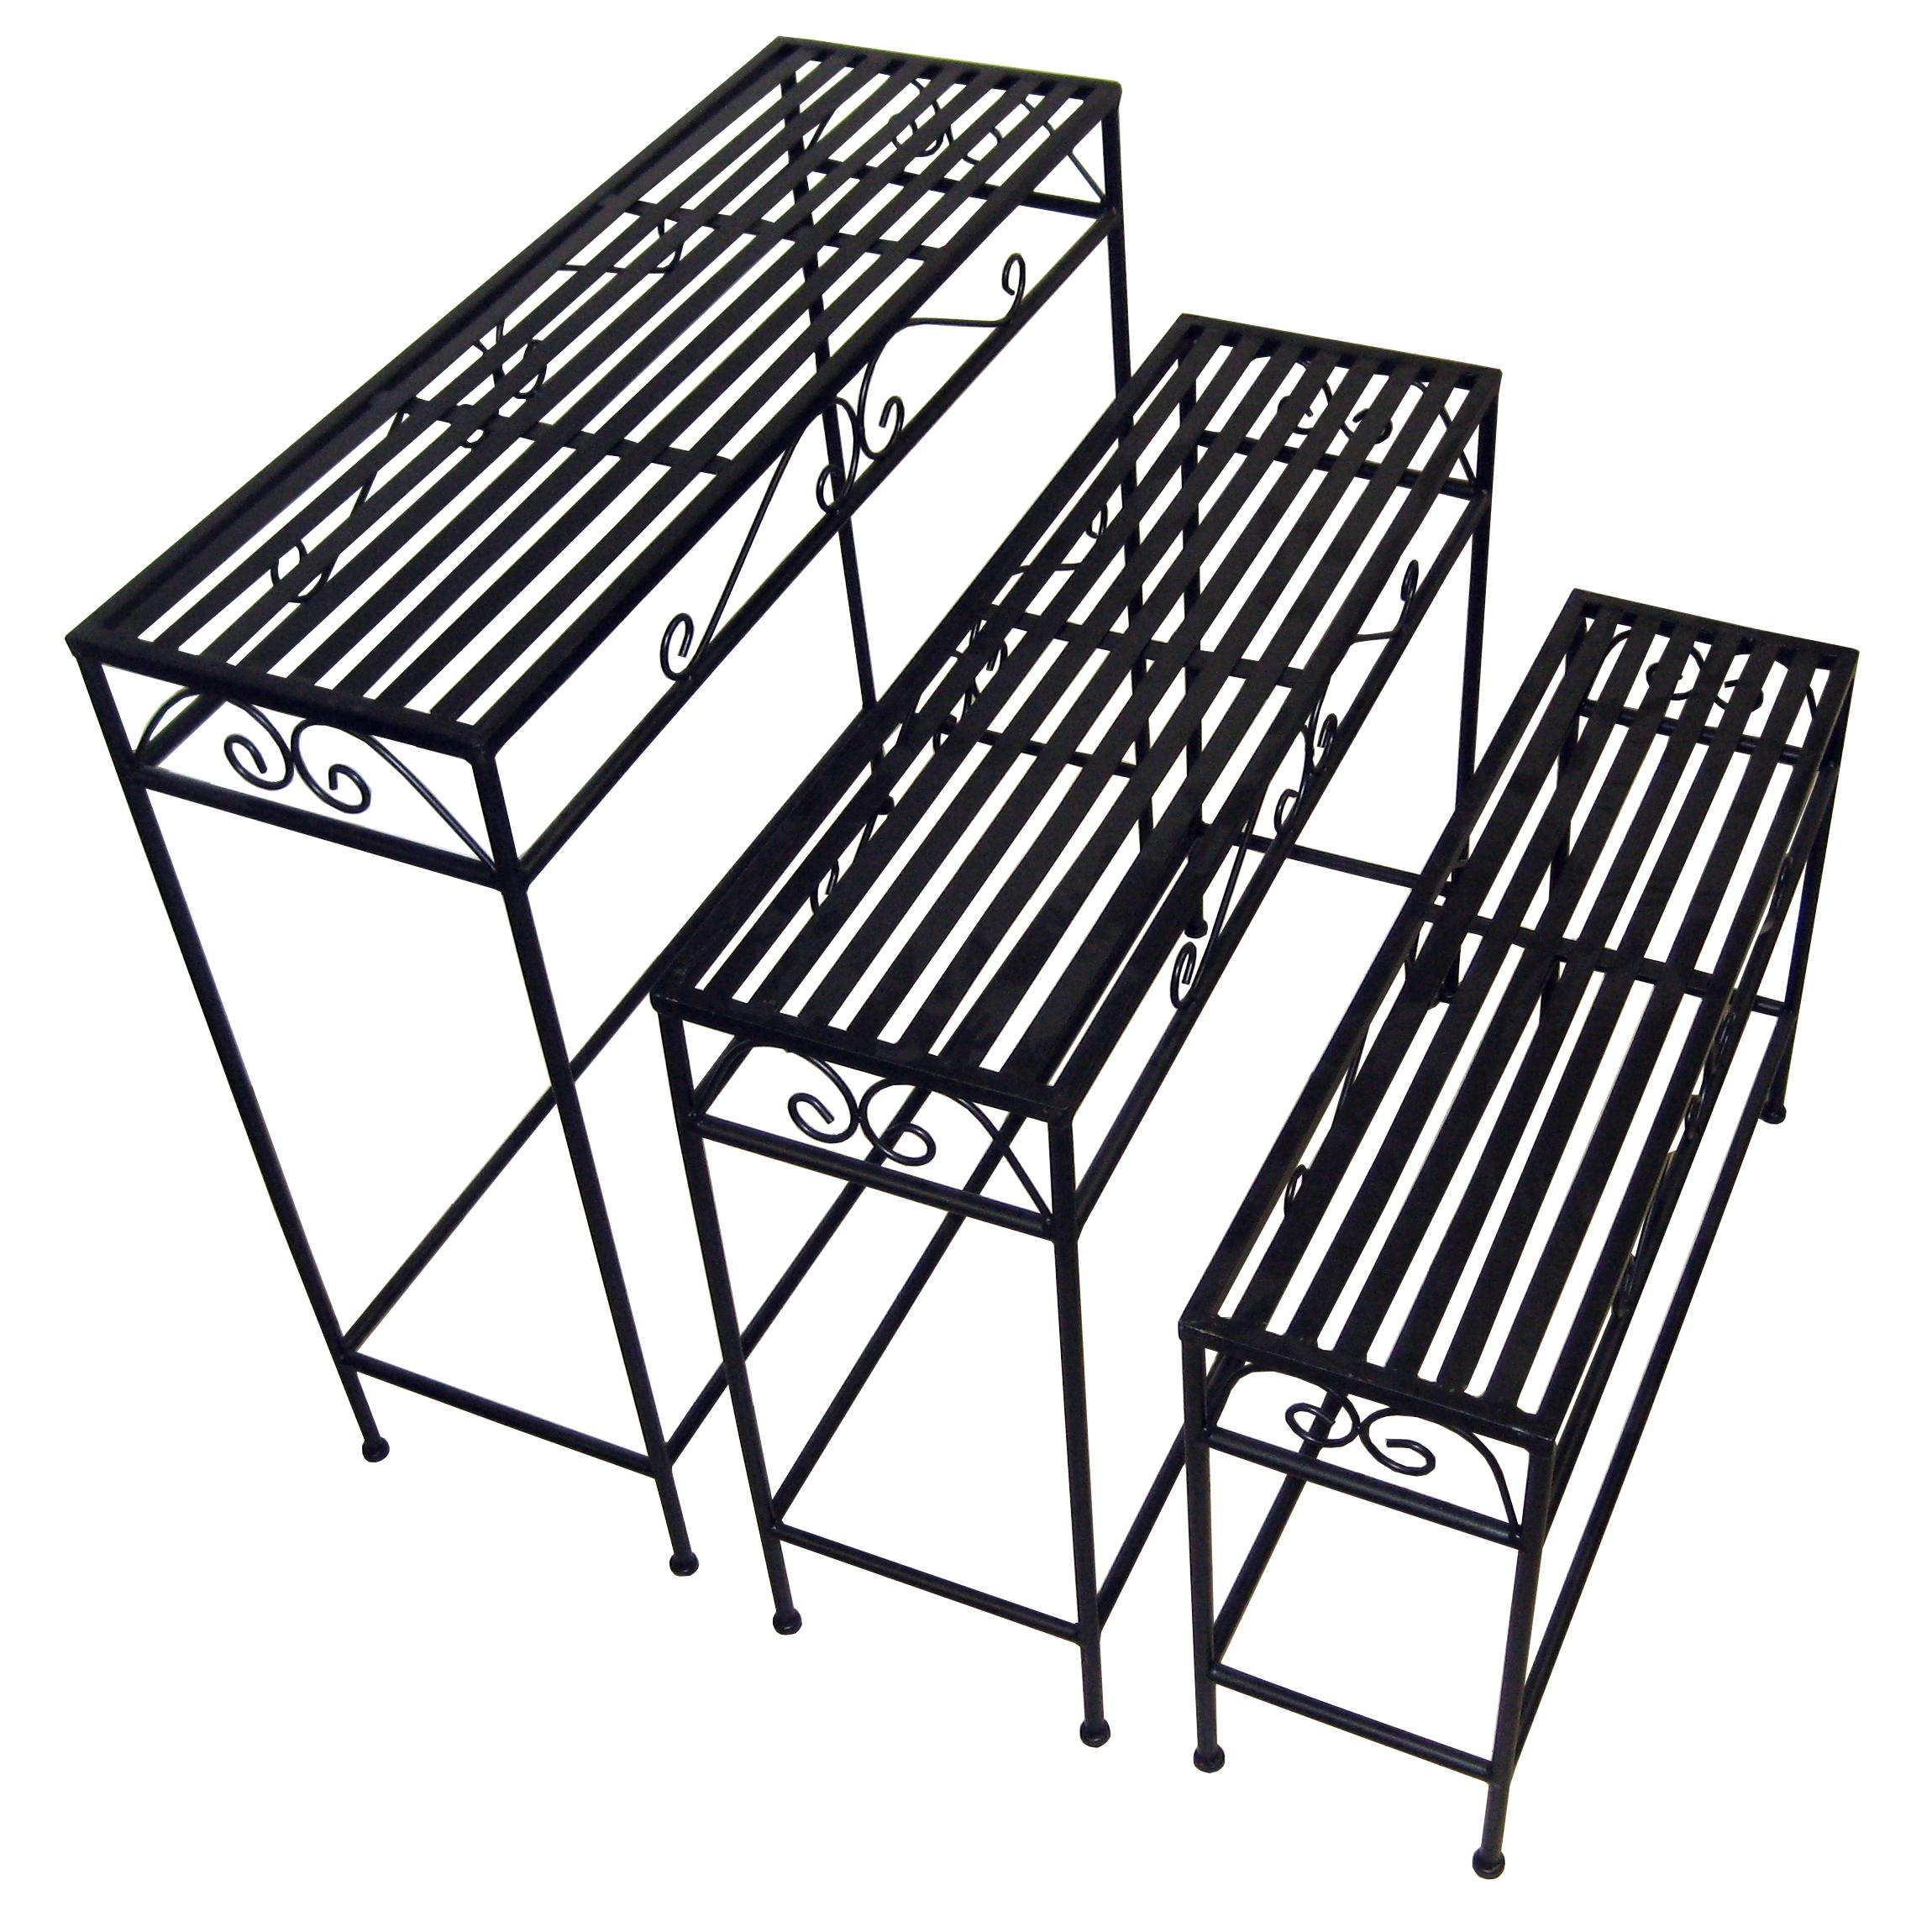 Nesting Tables For Patio | Mpfmpf Almirah, Beds, Wardrobes And pertaining to Patio Sofa Tables